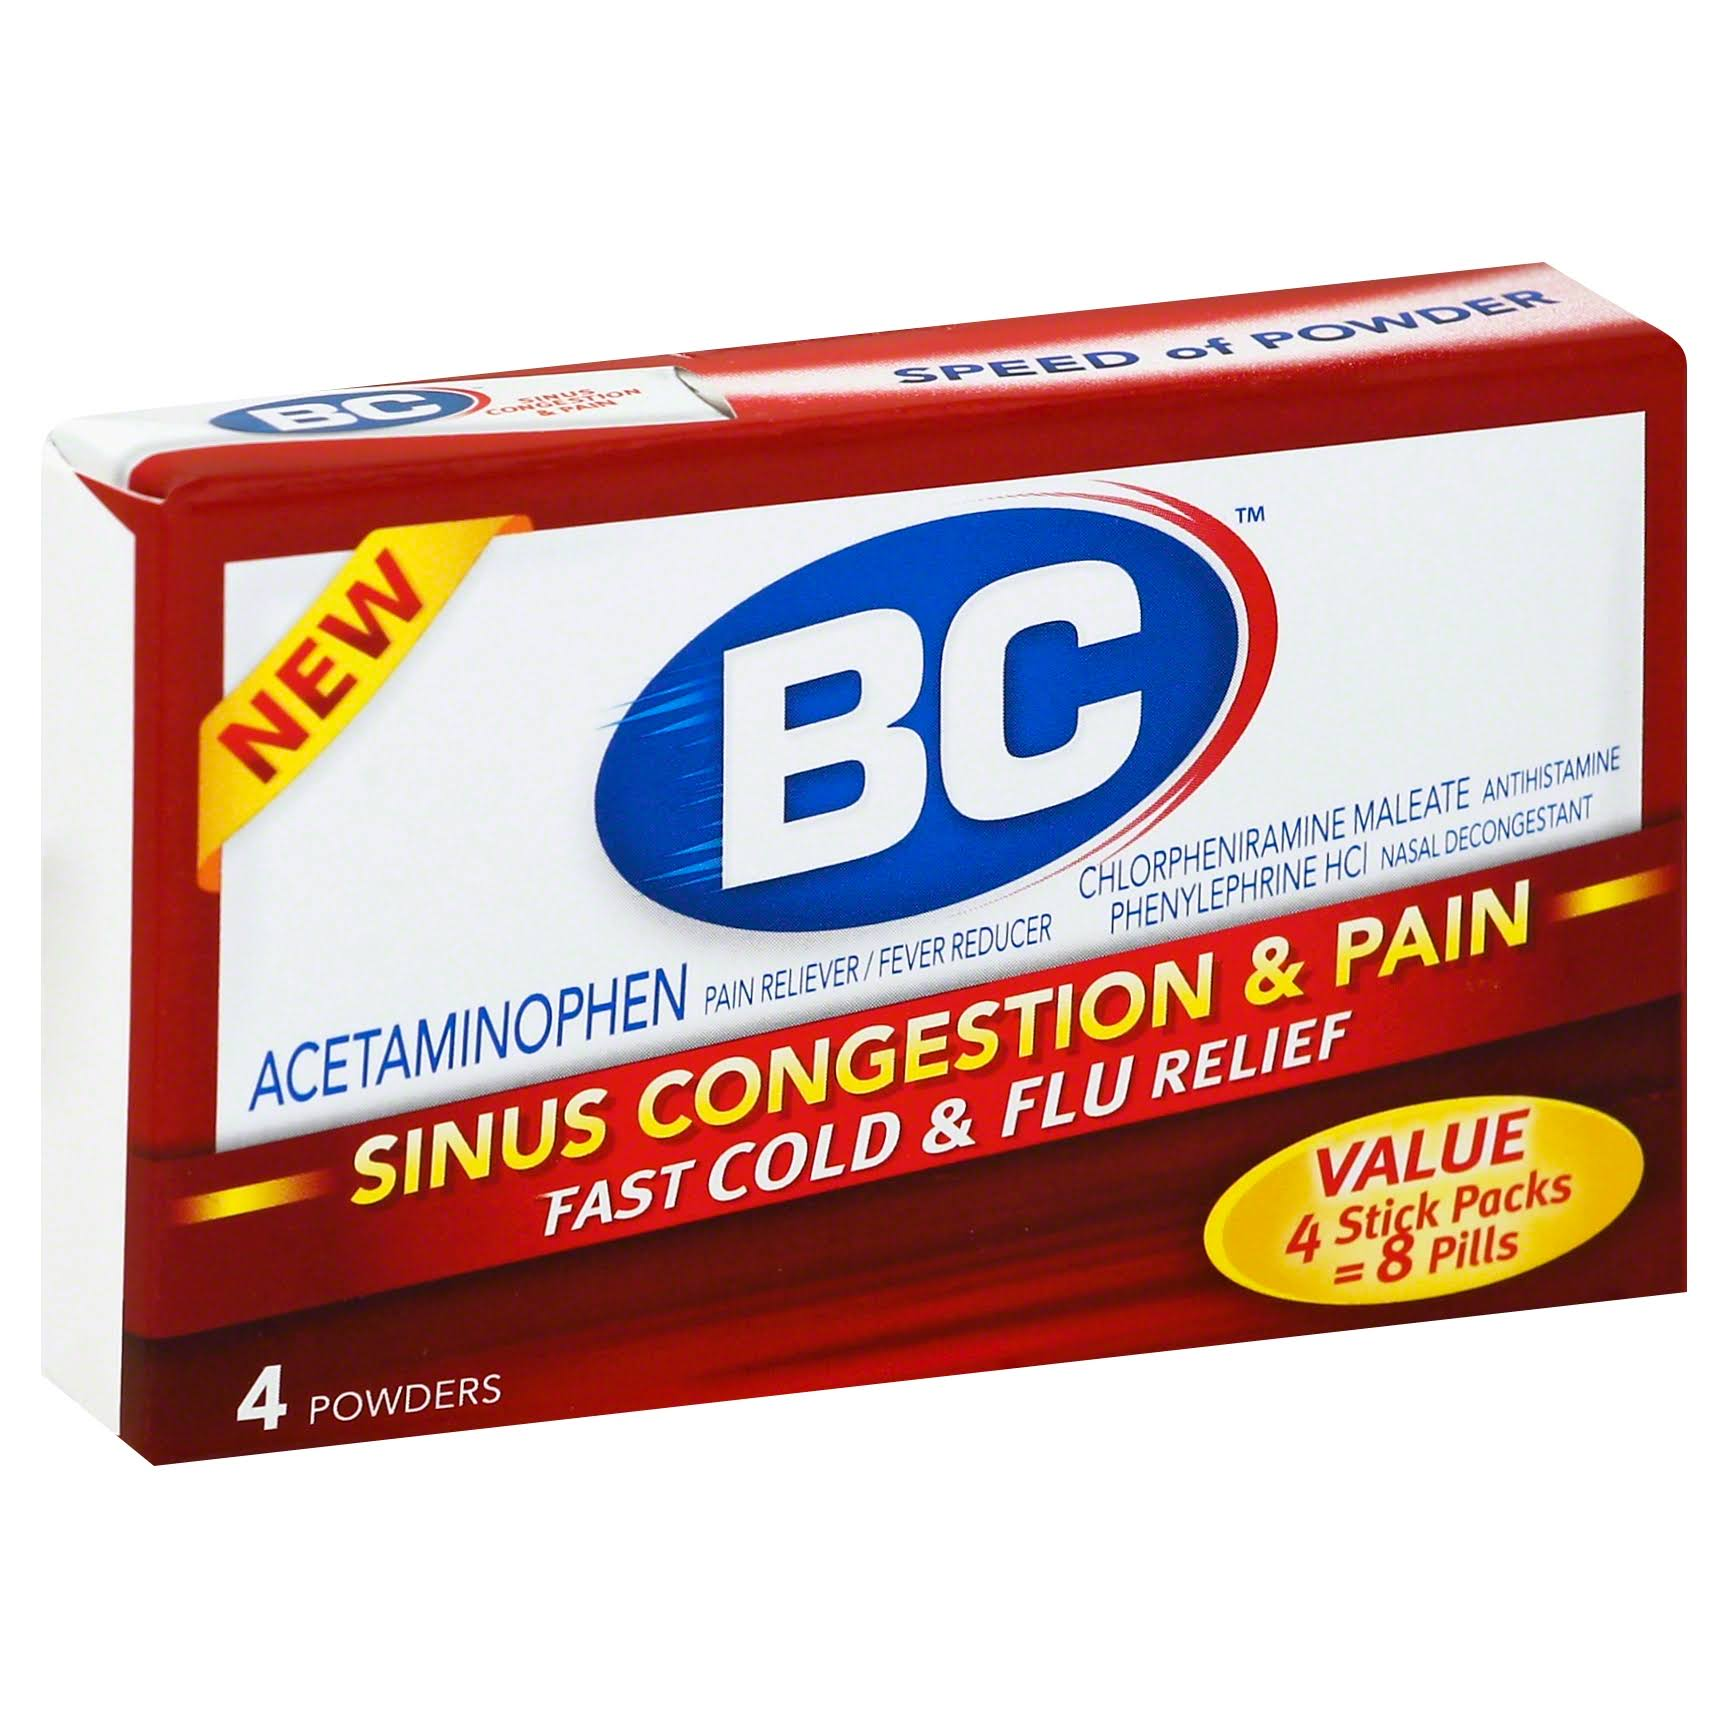 BC Sinus Congestion & Pain, Powder, 4 Stick Packs - 4 powders